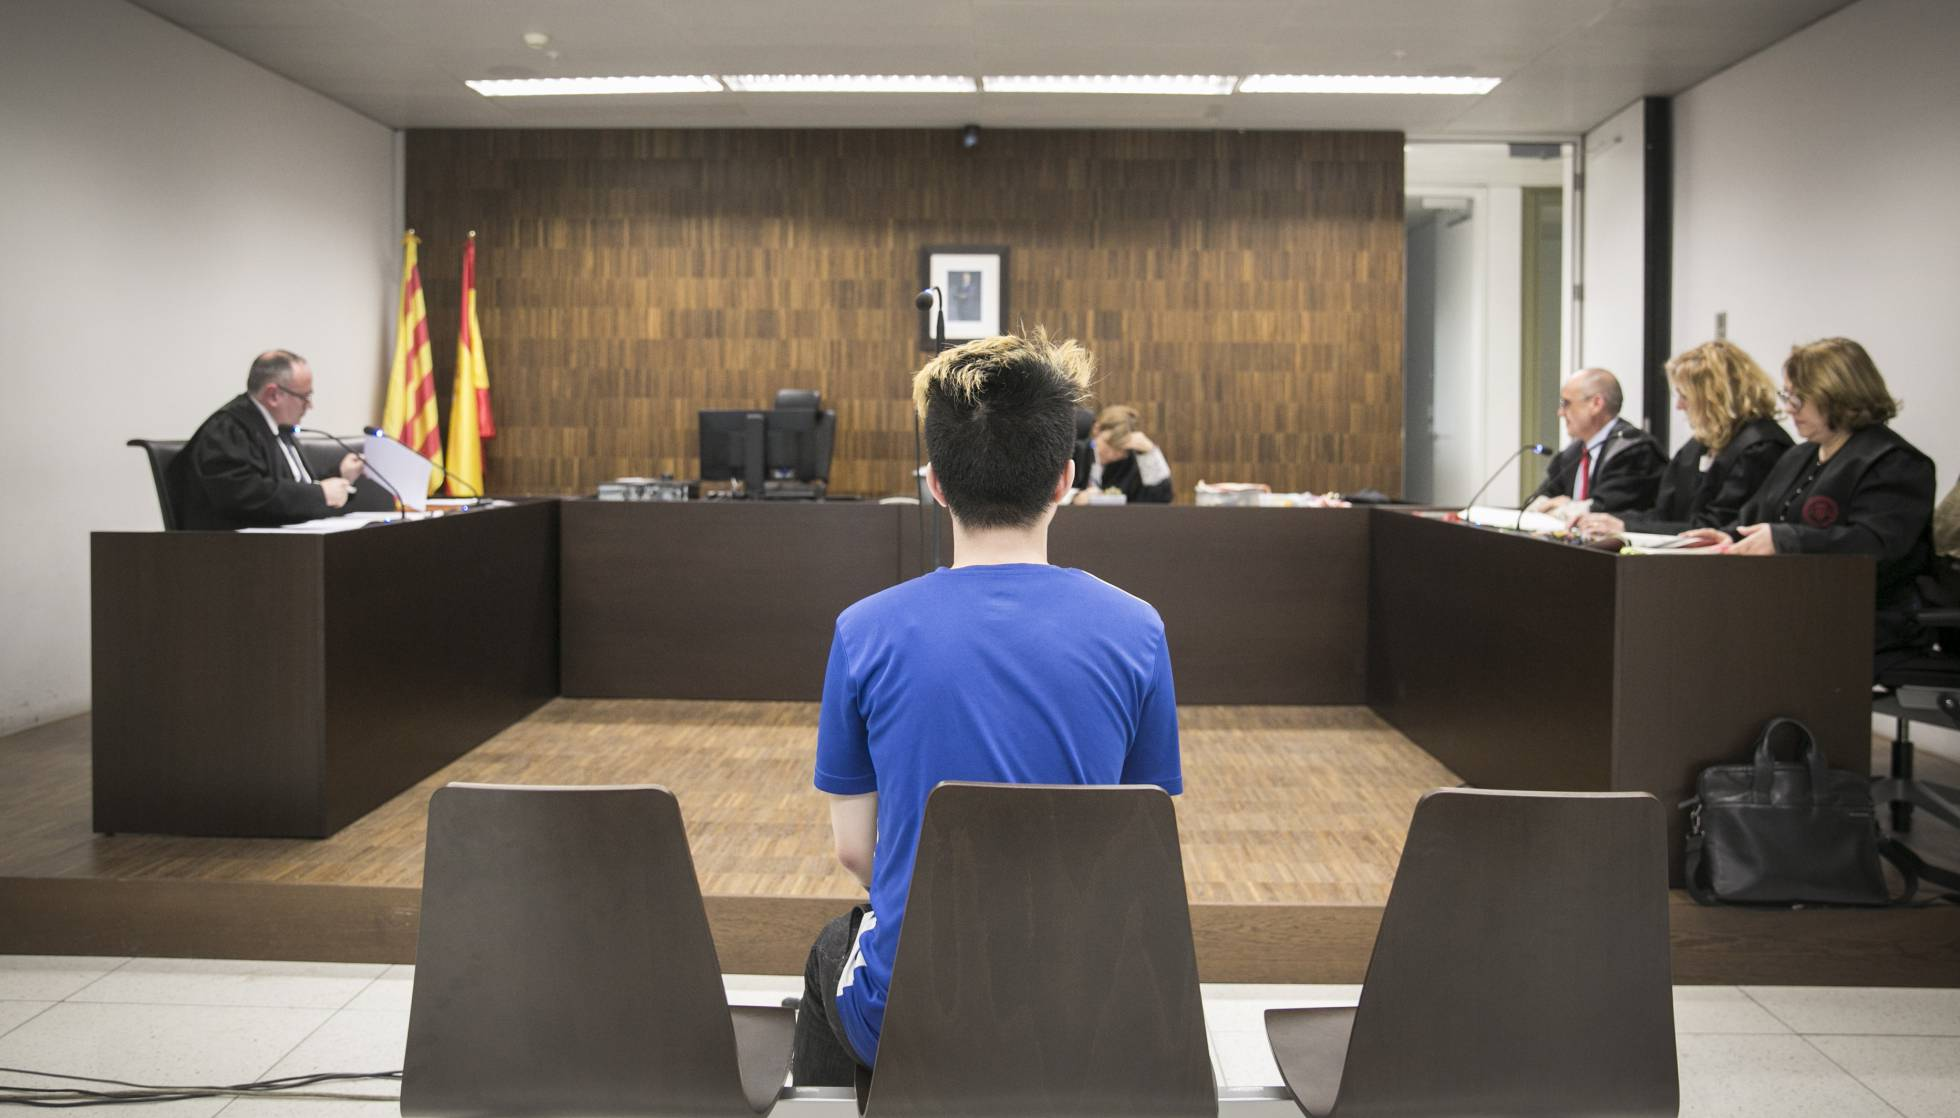 Image from El Pais